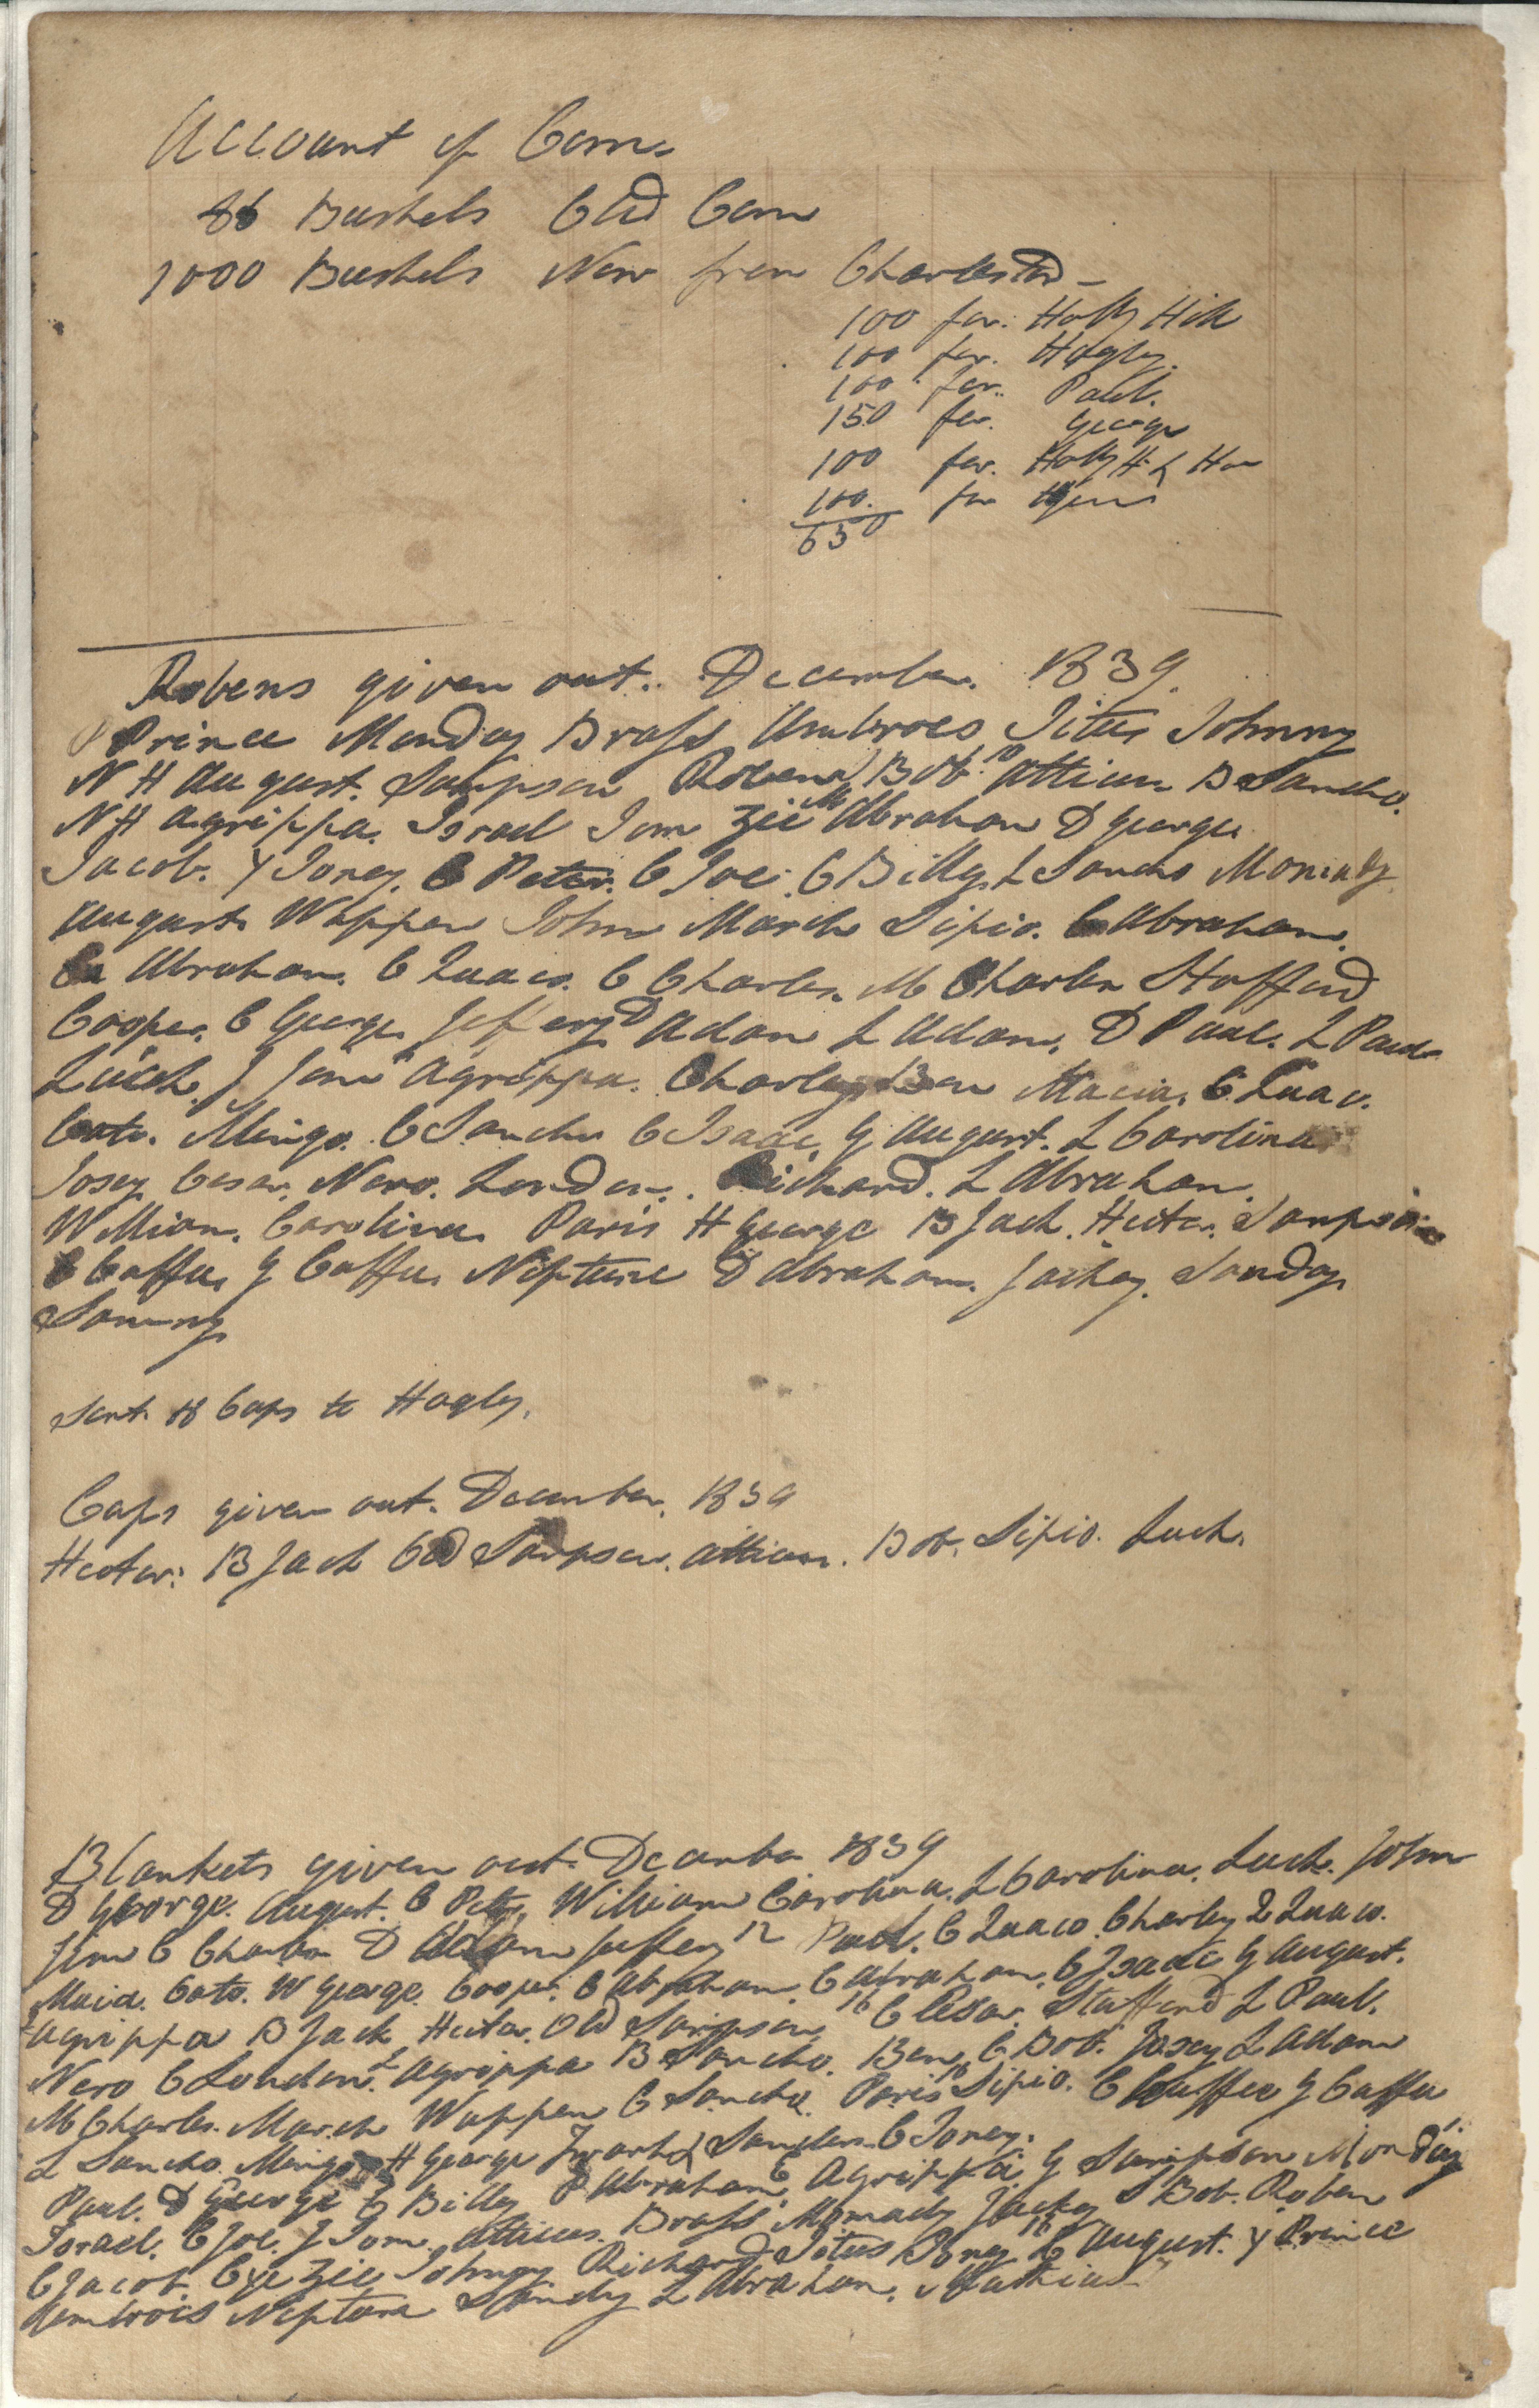 Plowden Weston's Business Ledger, Plantation Records 1